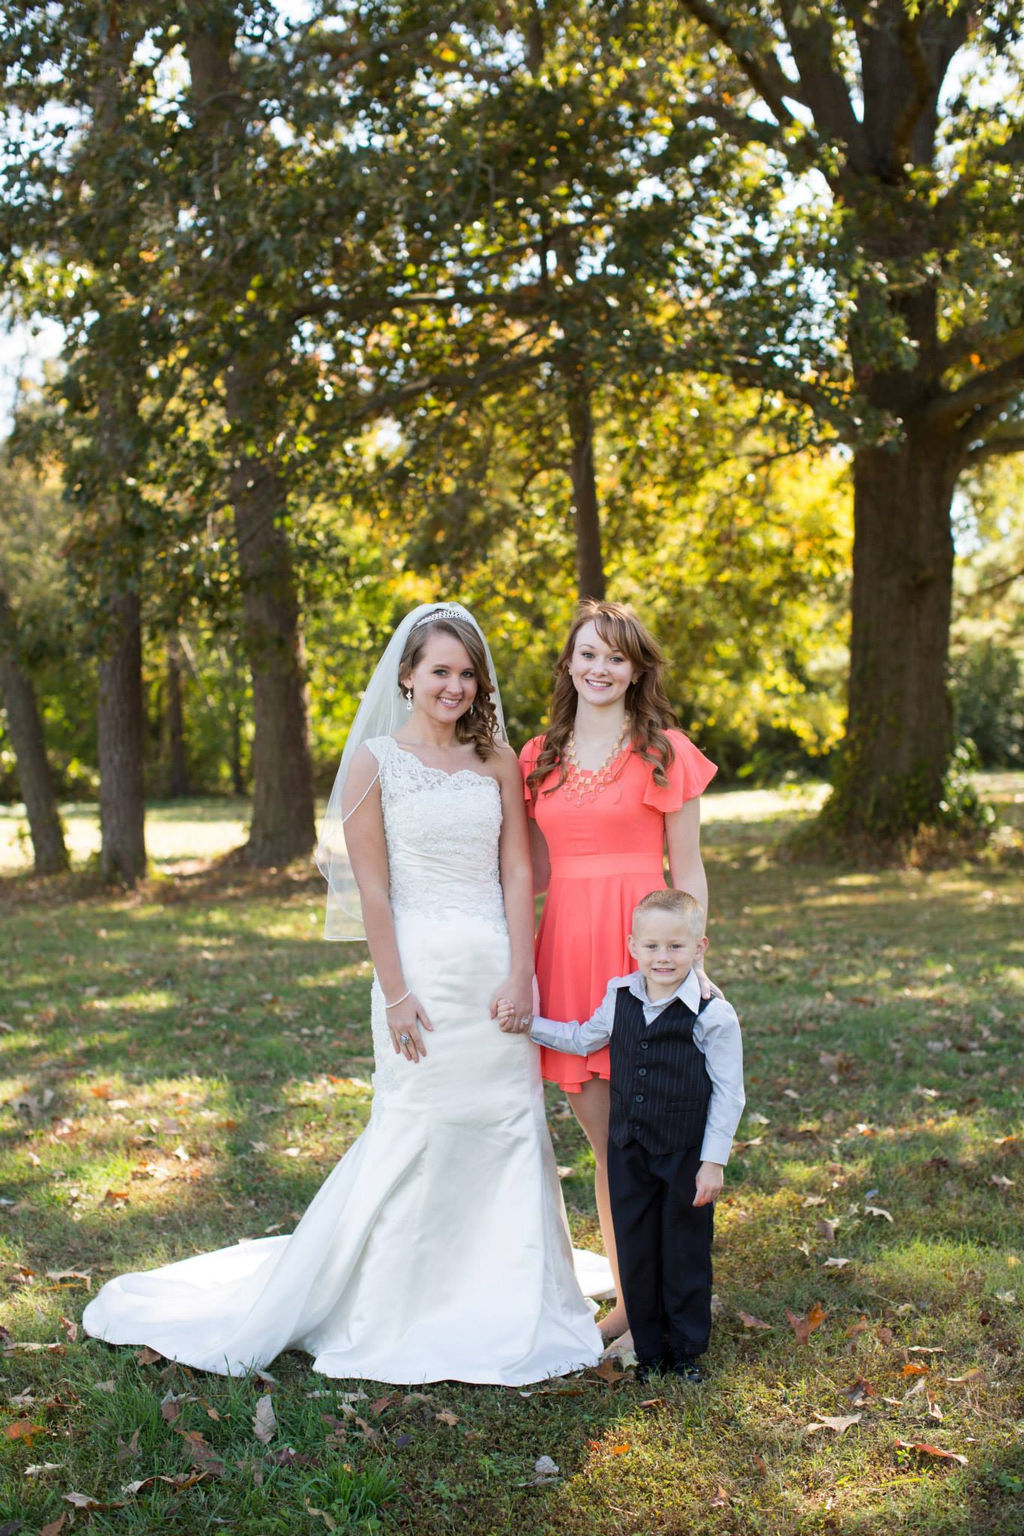 Wedding day portraits with ring bearer